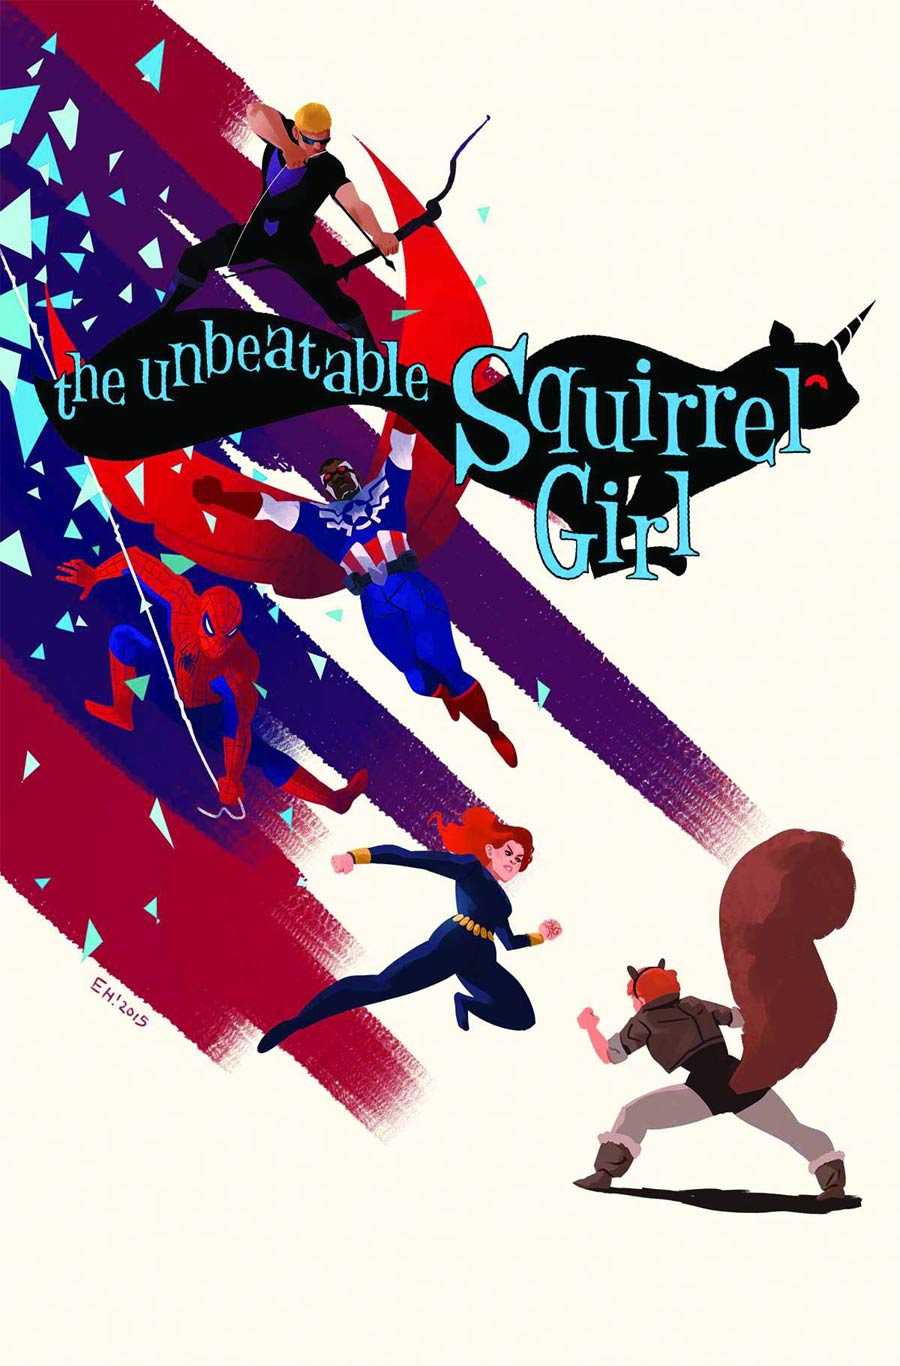 Unbeatable Squirrel Girl Magazine